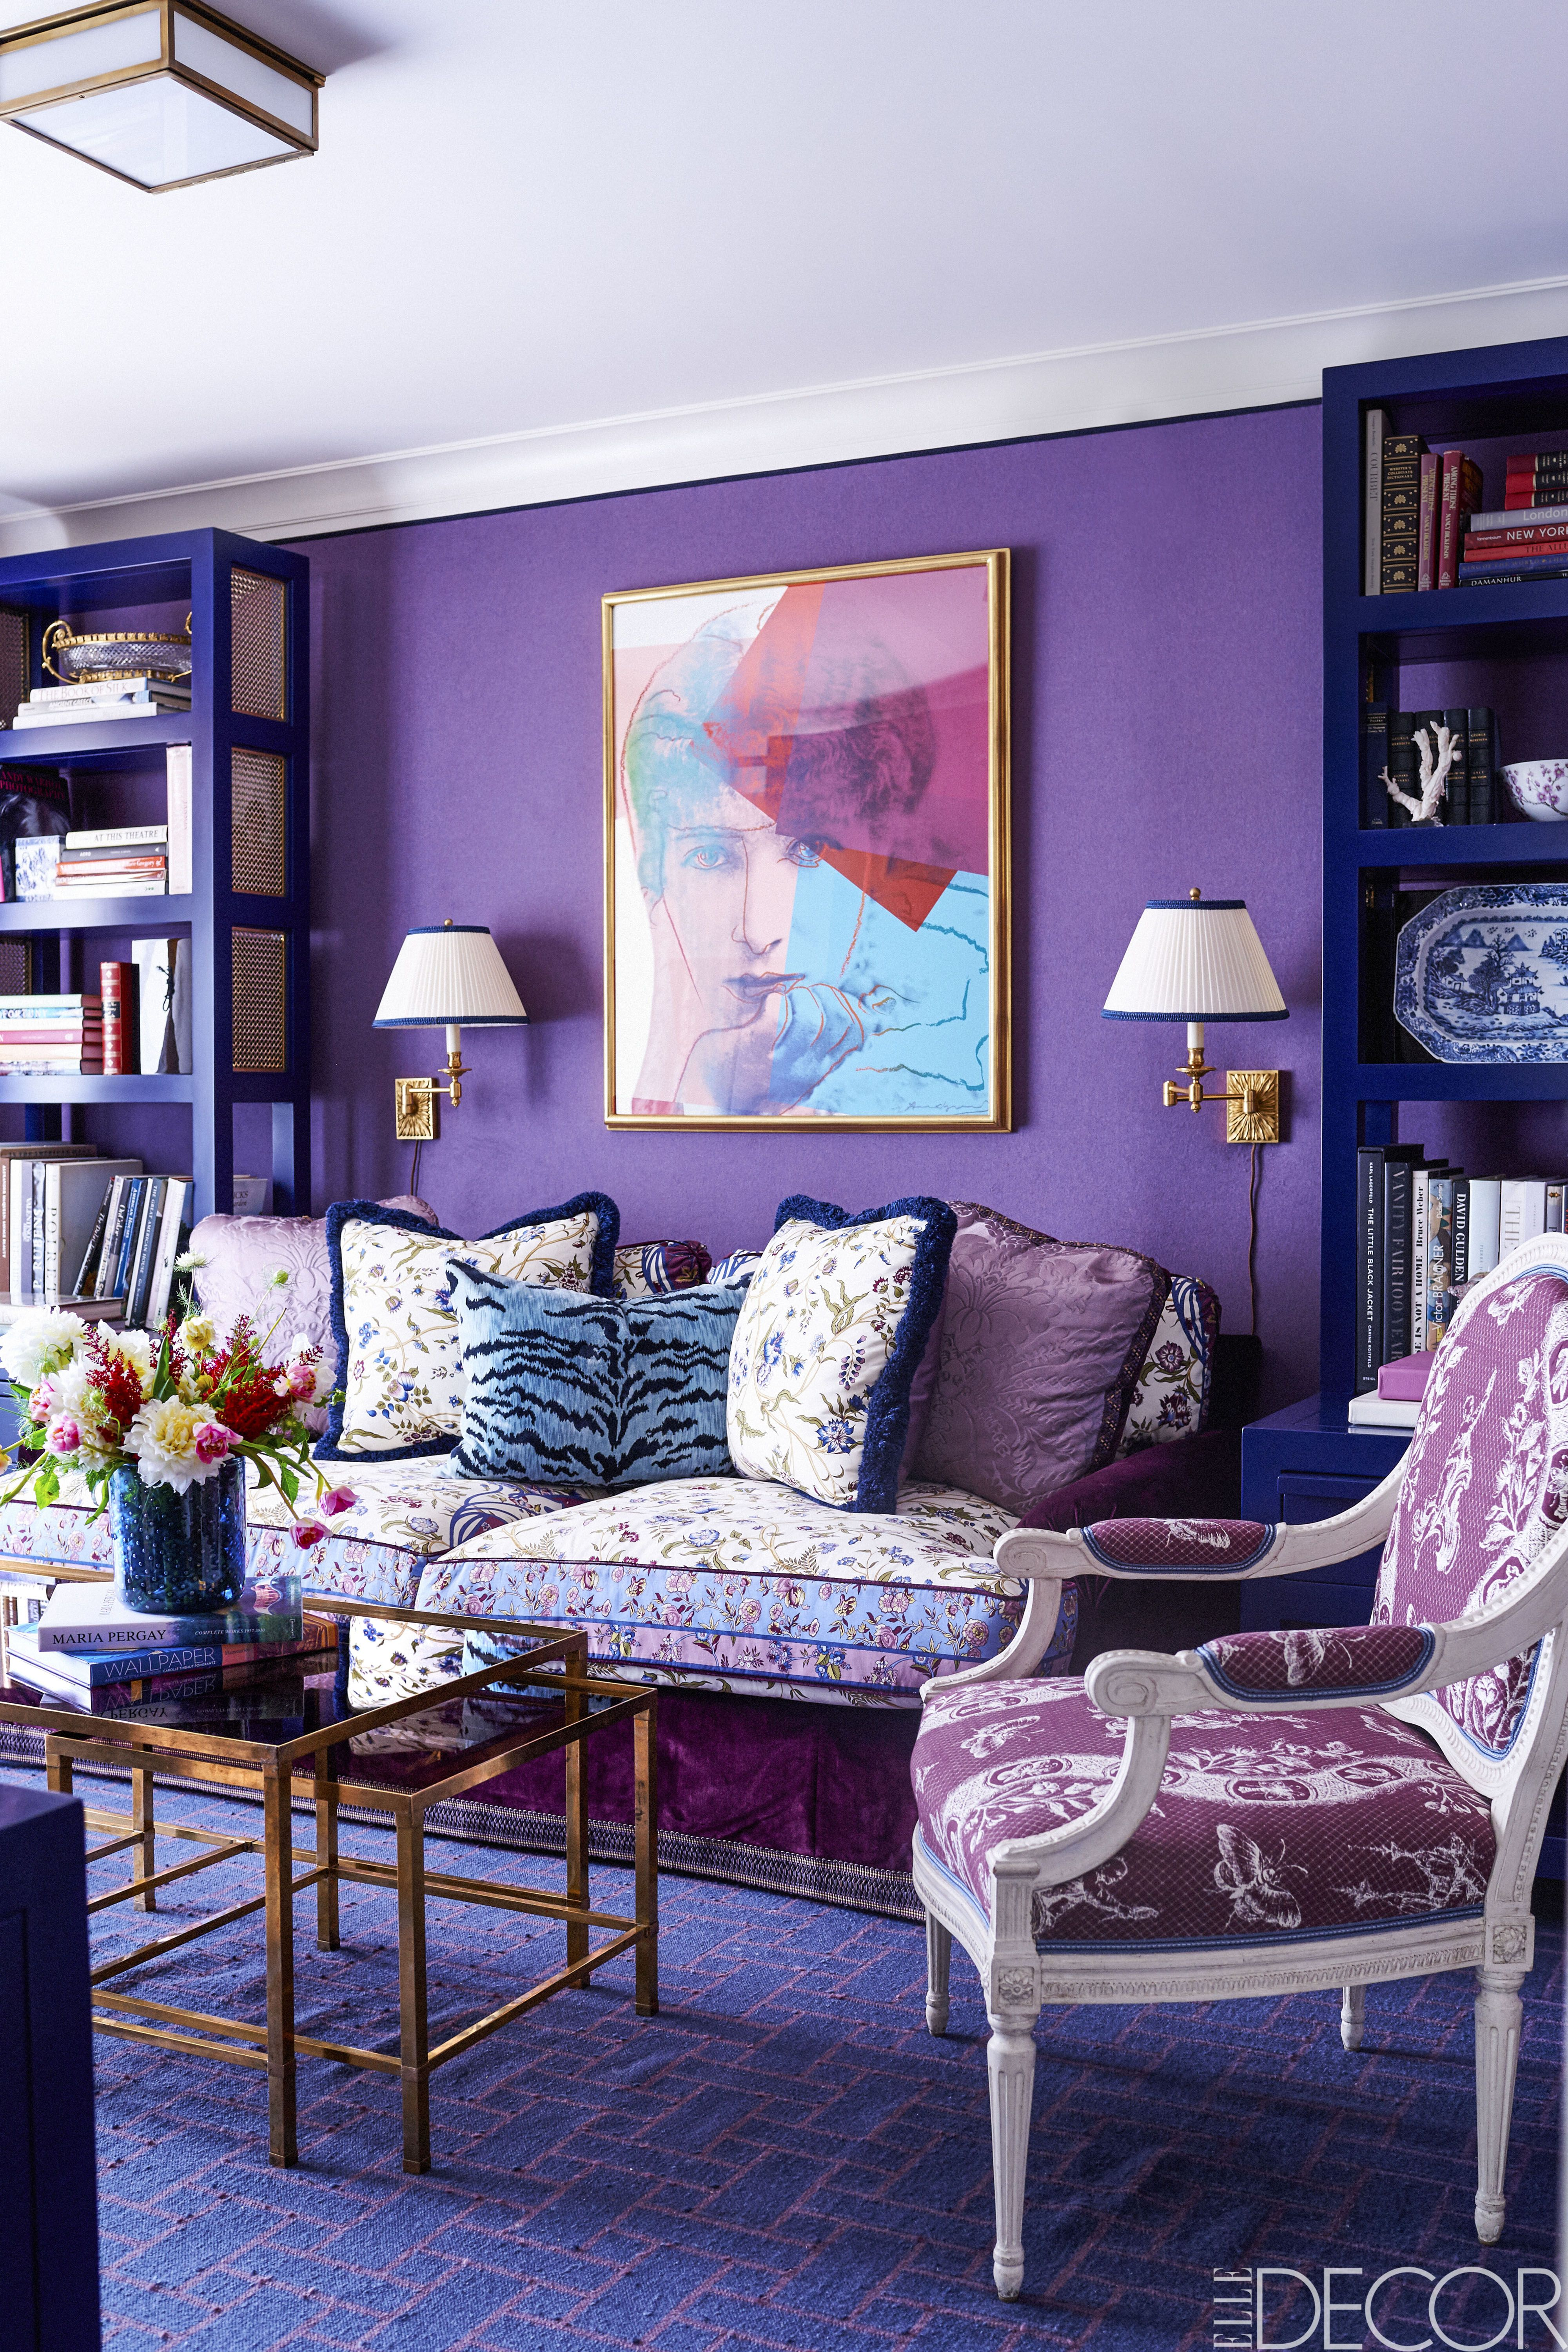 image & 21 Best Purple Rooms \u0026 Walls - Ideas for Decorating with Purple